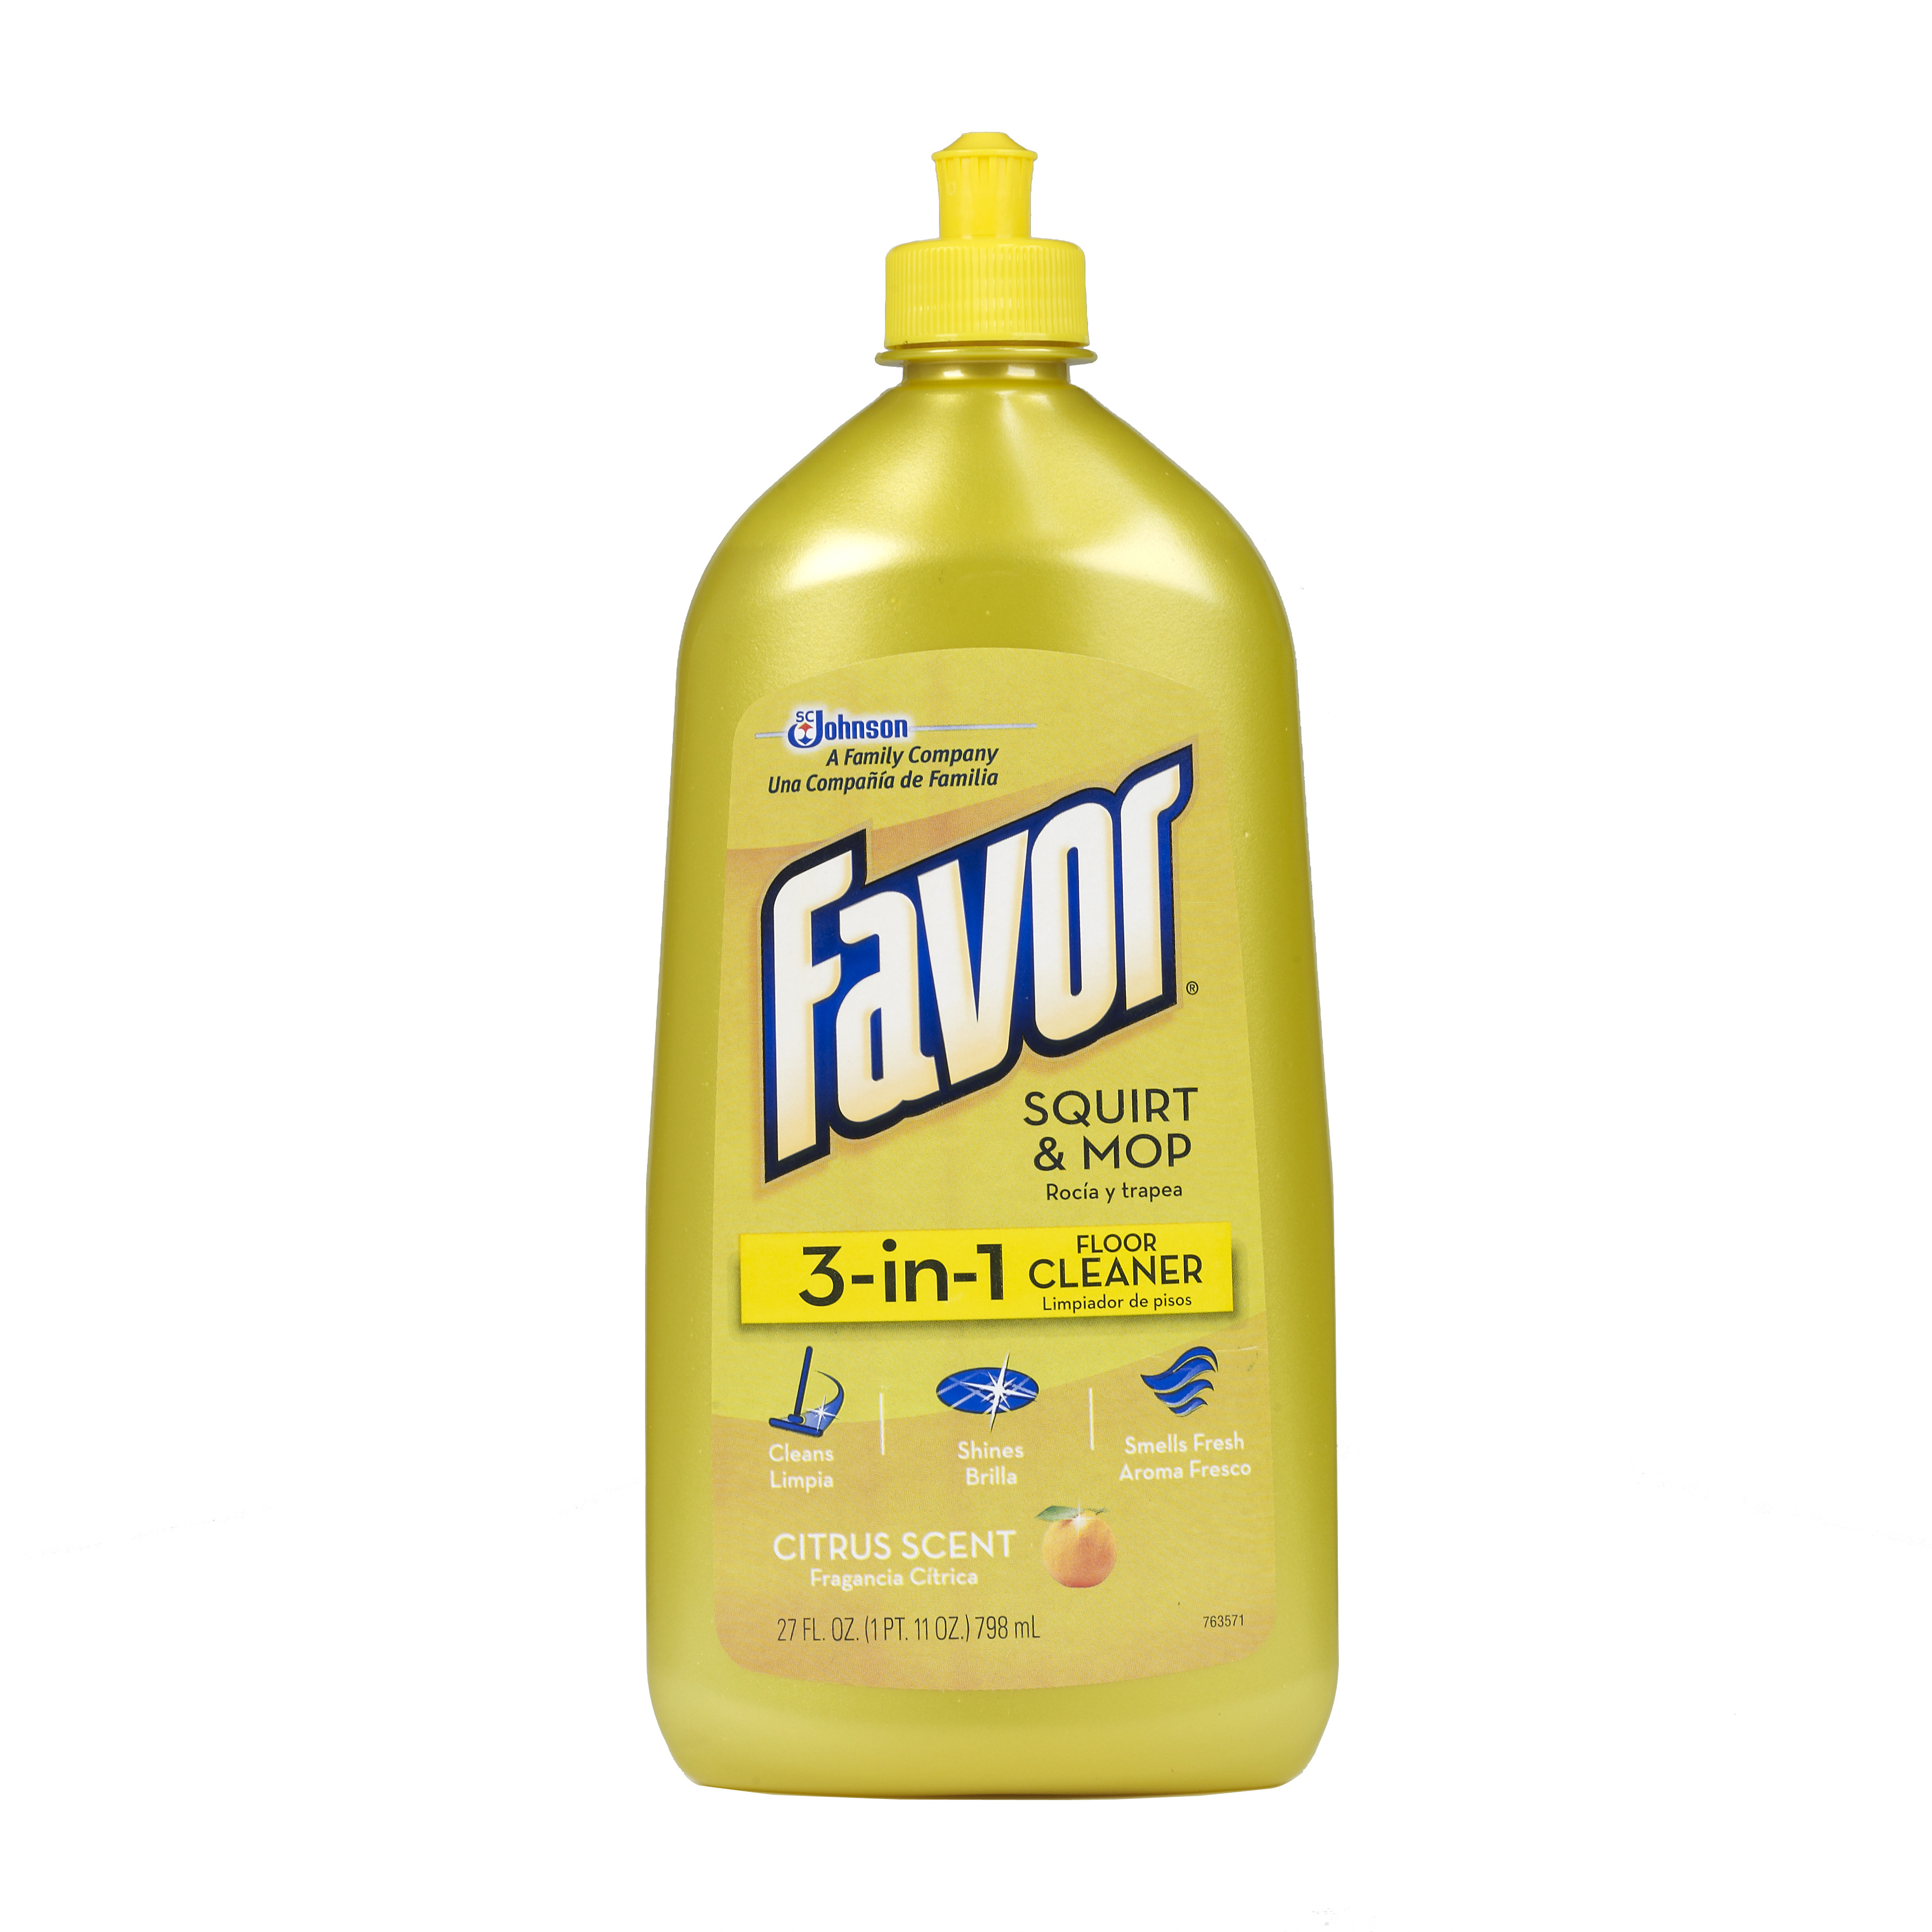 Favor 3-in-1 Floor Cleaner 27 Ounces.